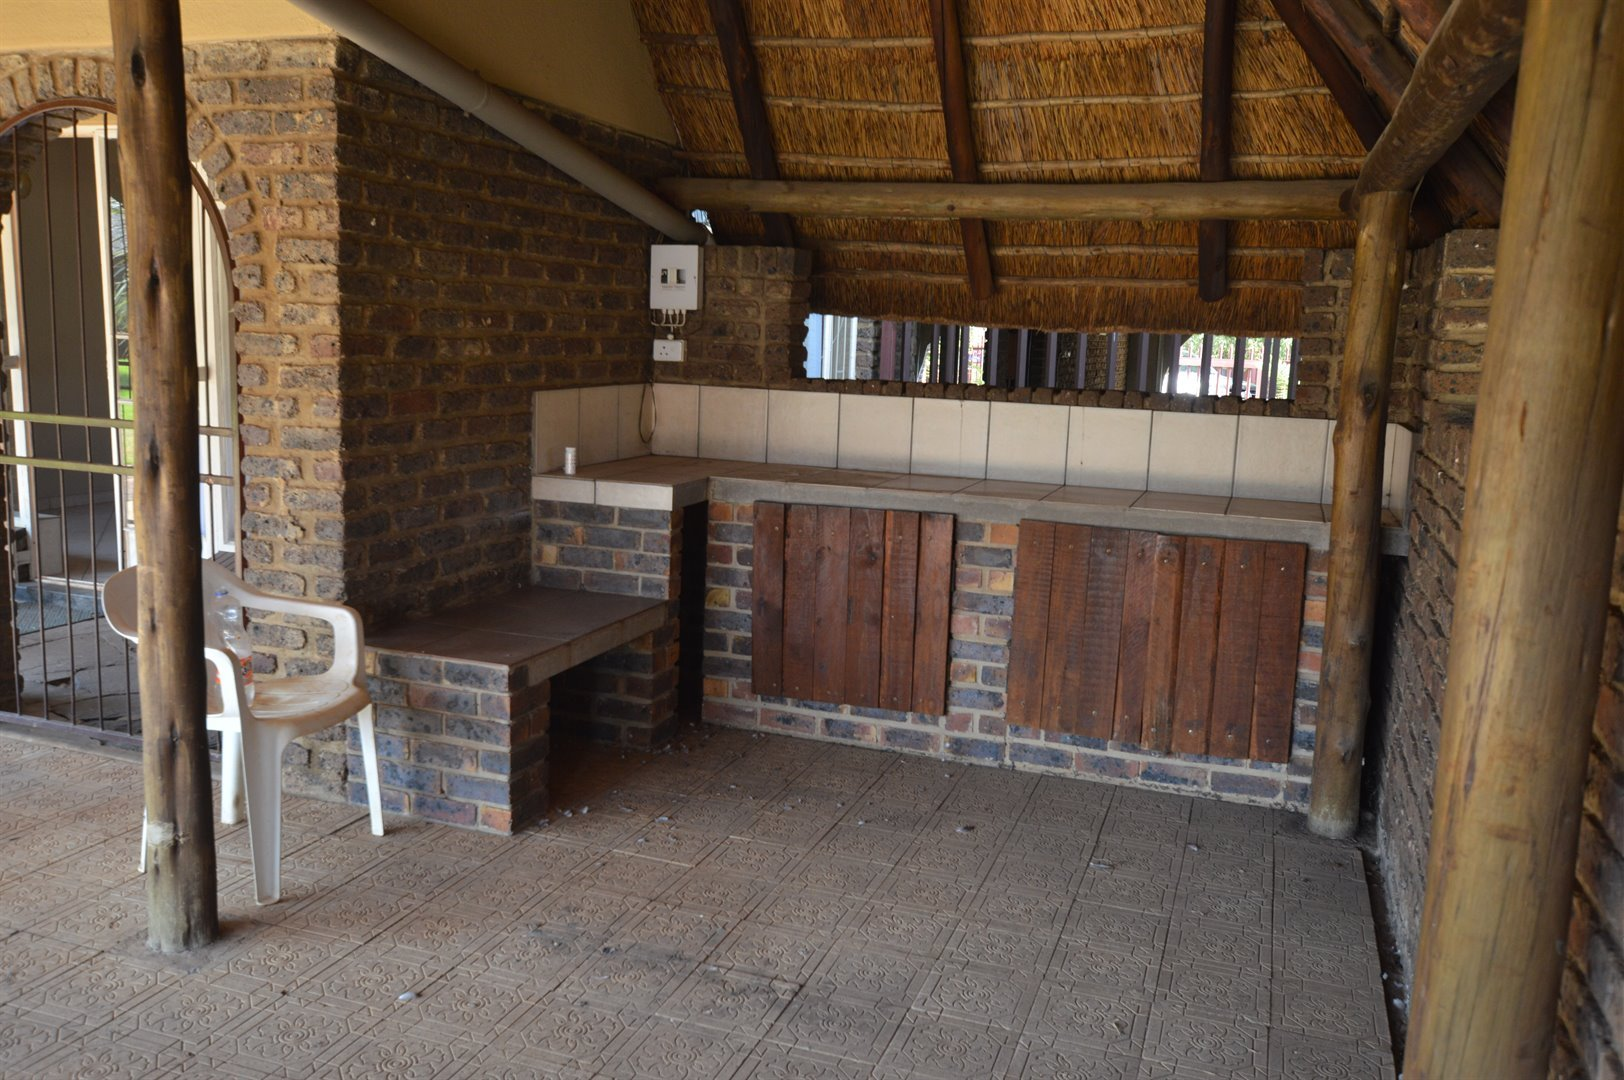 Vanderbijlpark Se 2 property for sale. Ref No: 13623209. Picture no 25